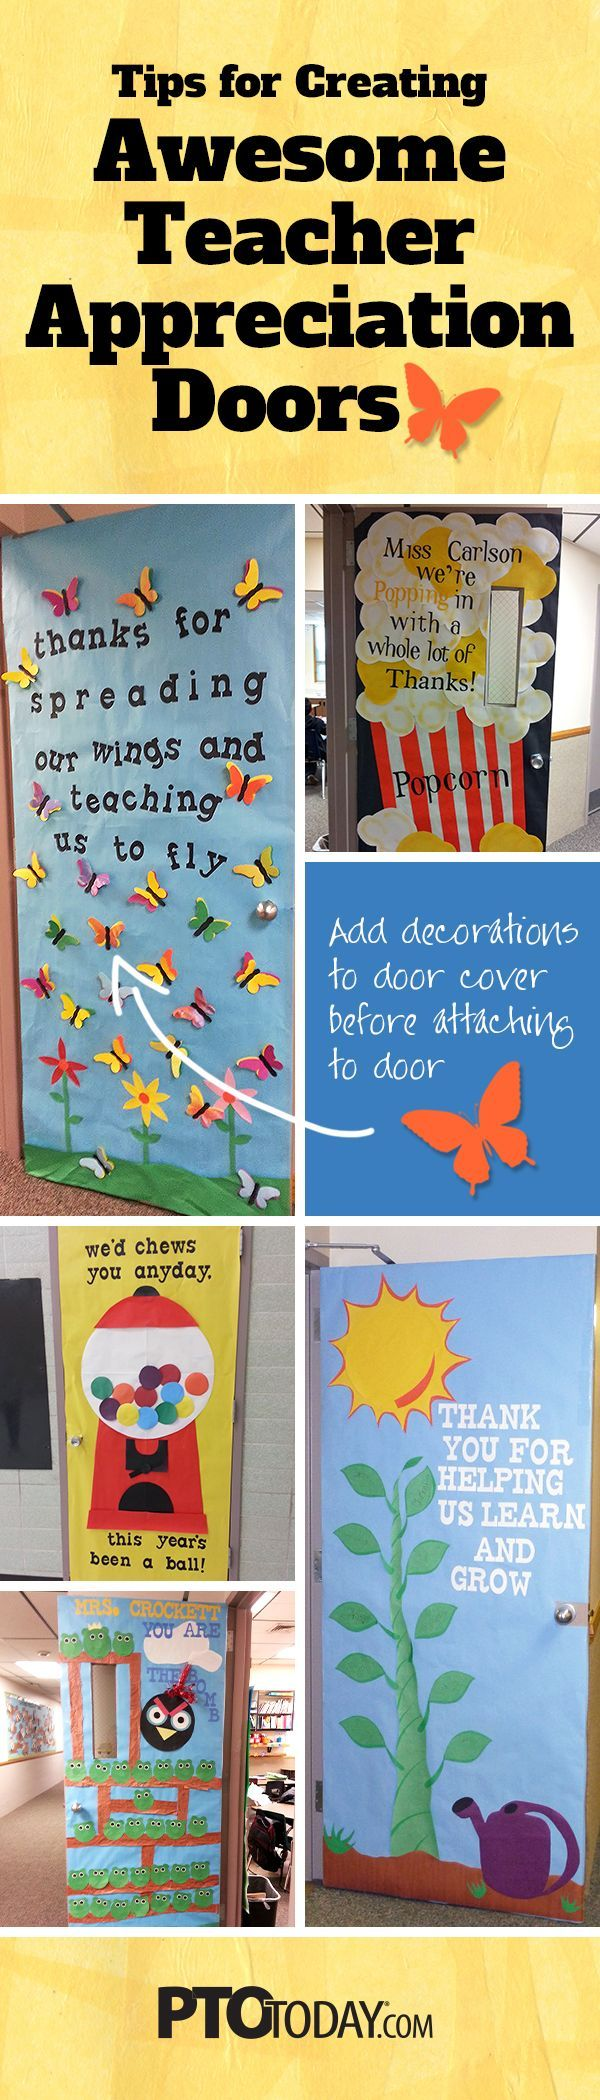 Teacher Appreciation Door Decorating Ideas